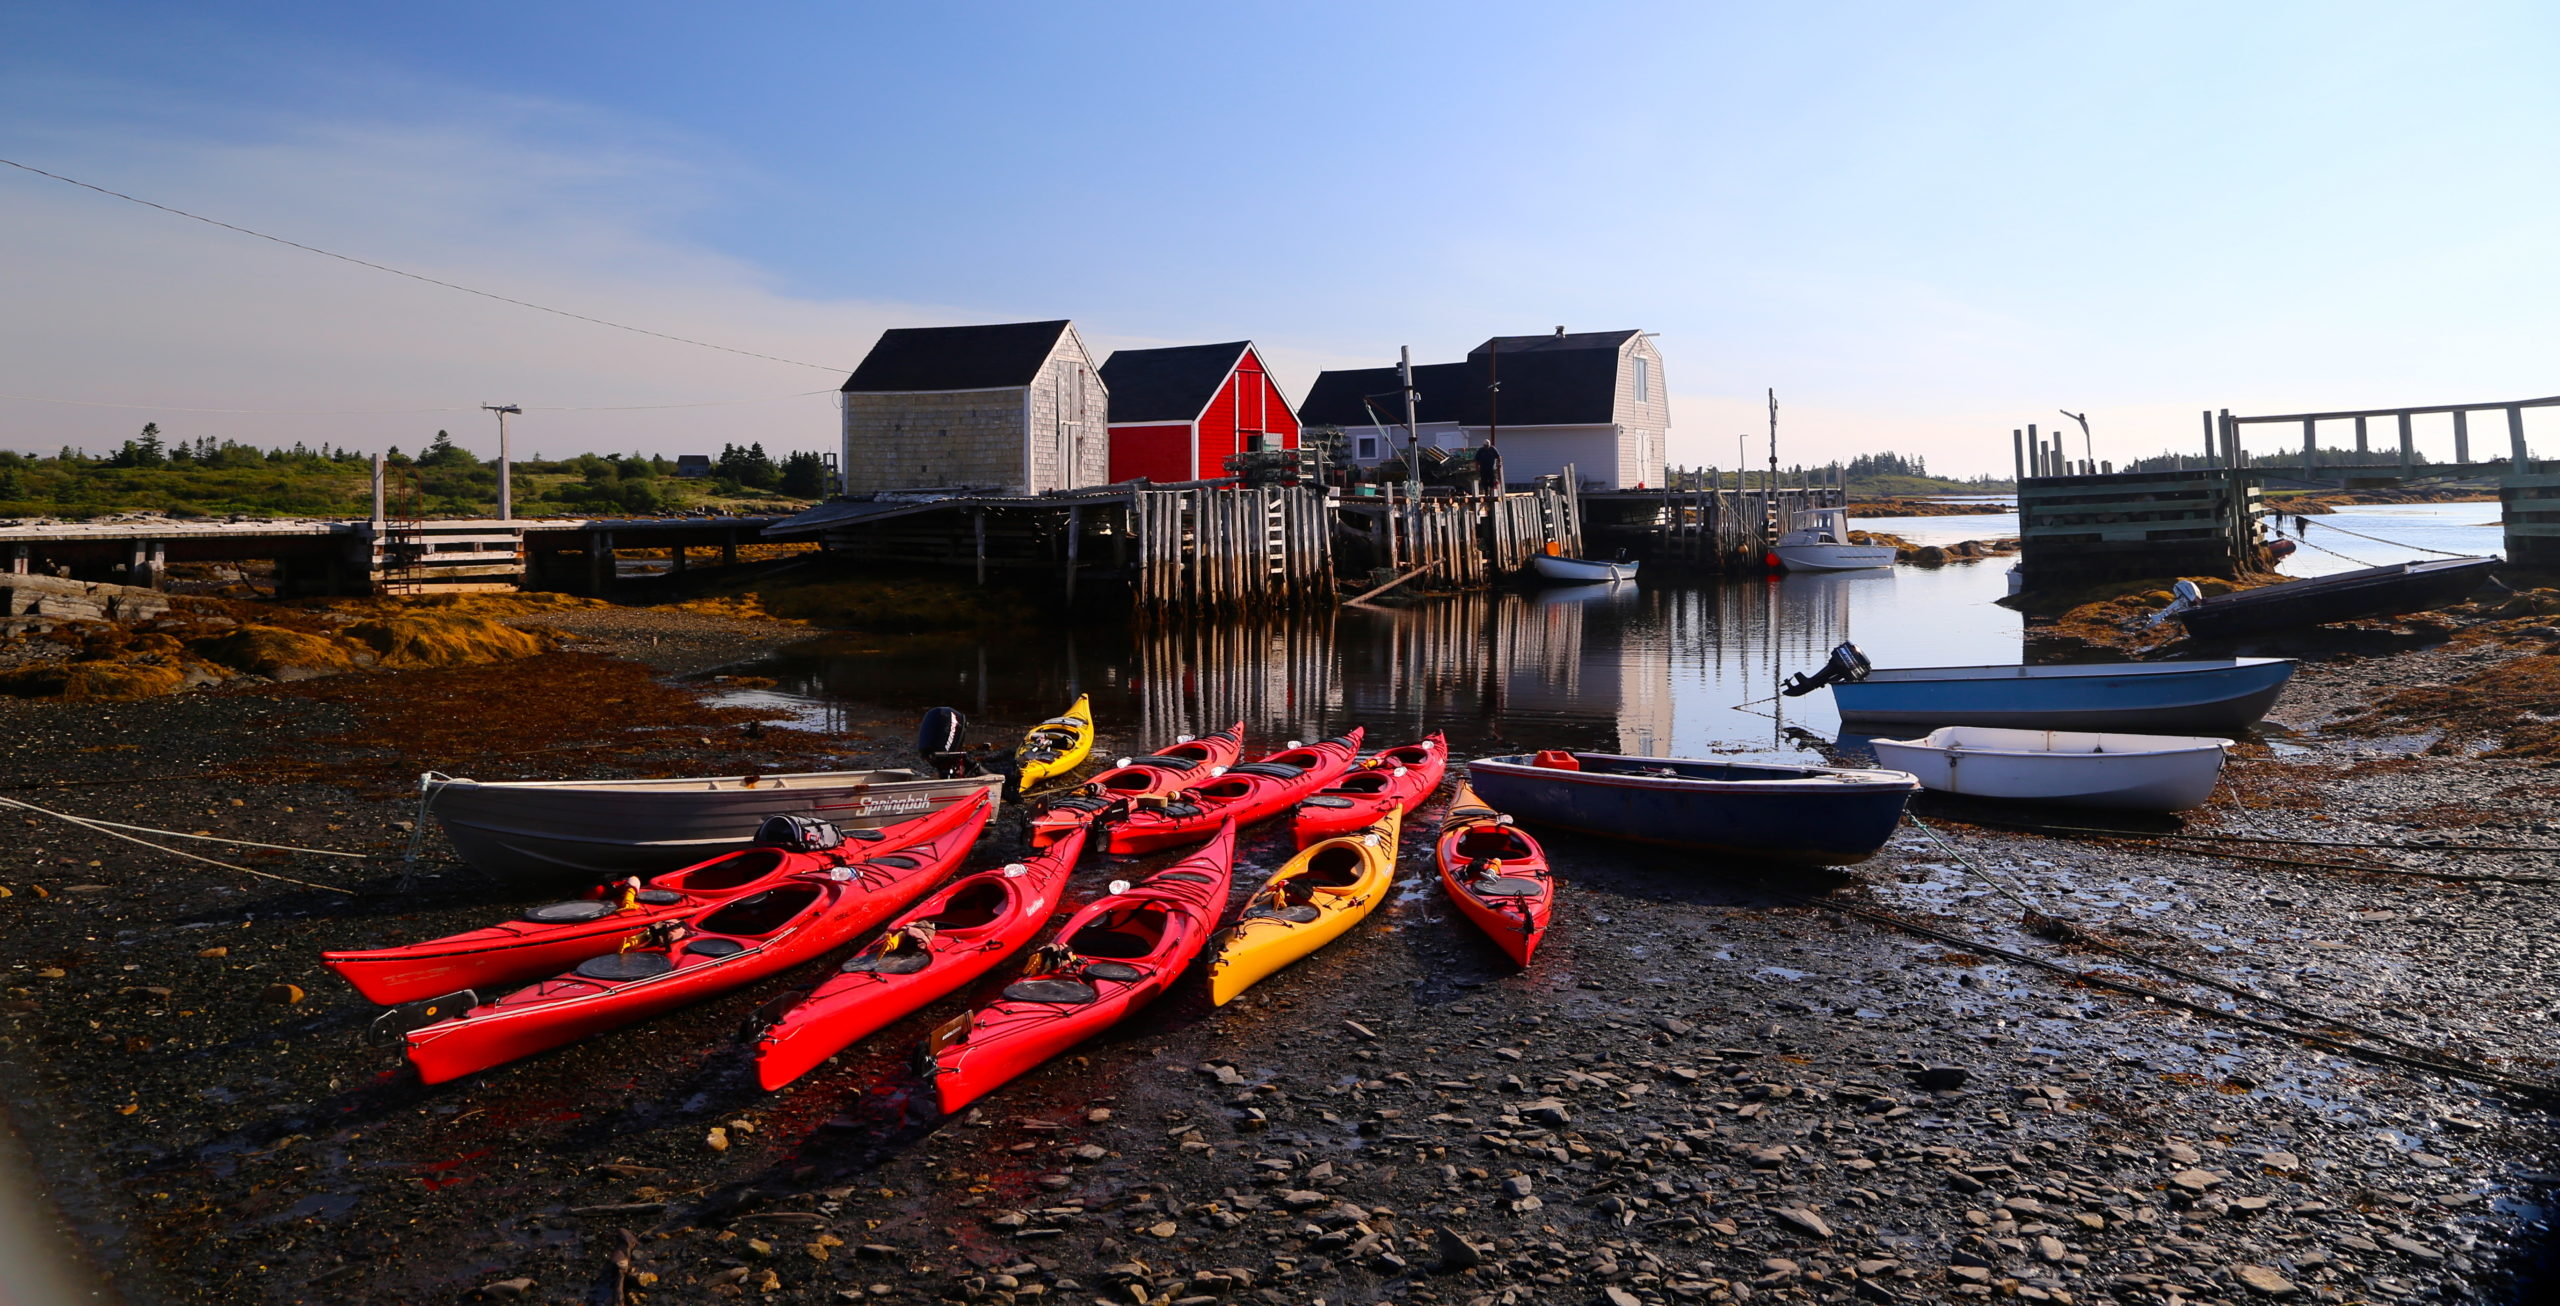 Colorful kayaks lined up along the shore; quintessential Quebec!